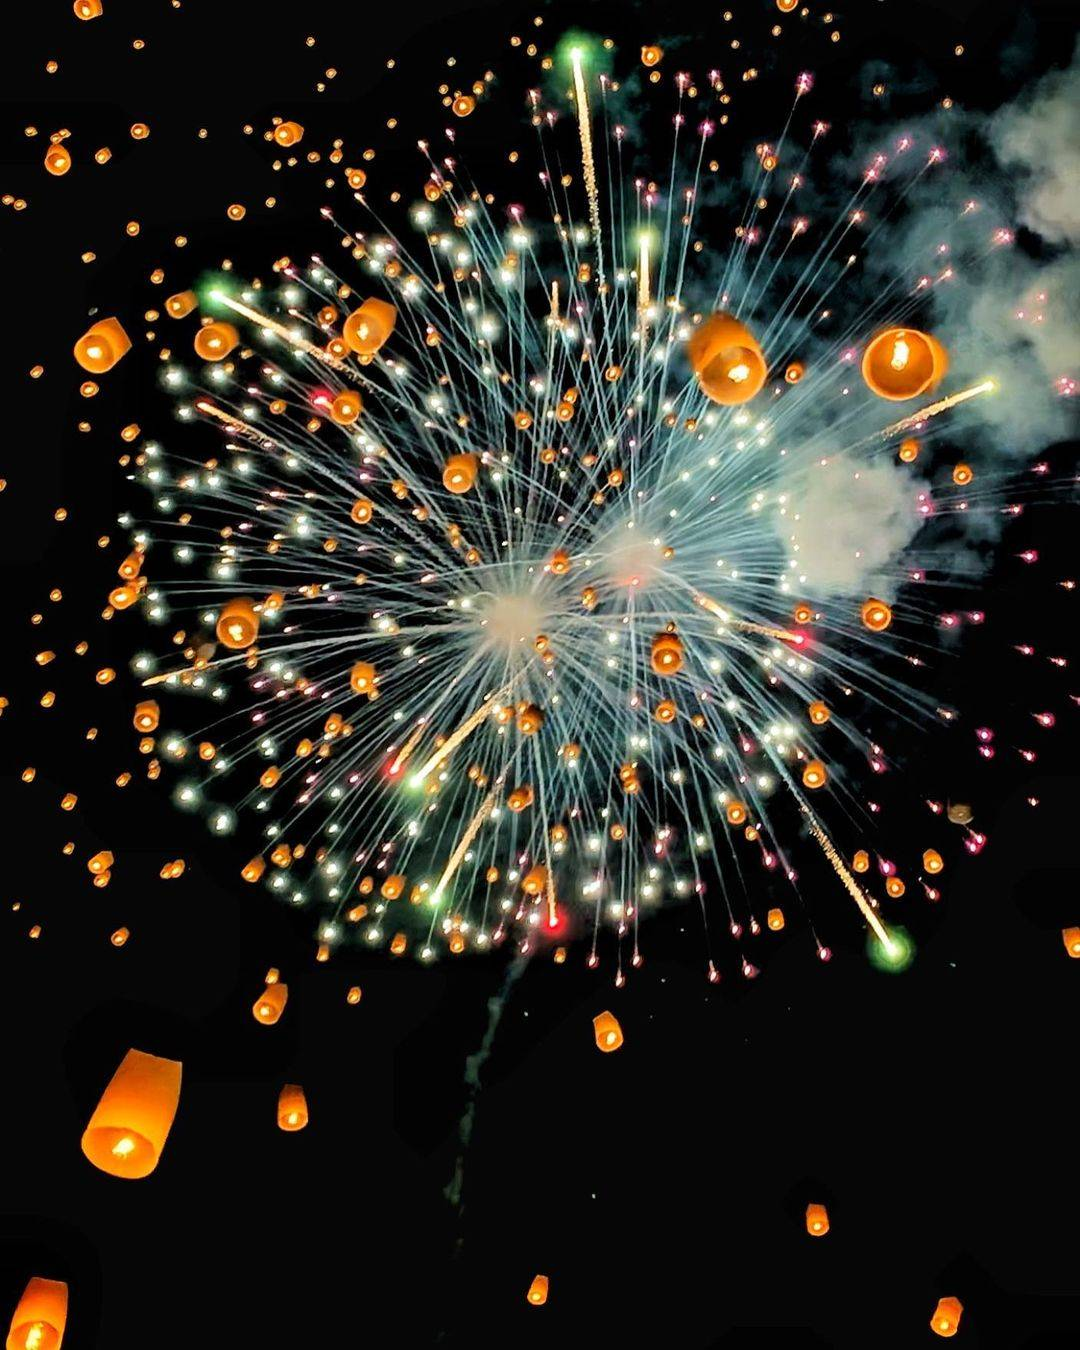 Fireworks and burning lanterns during Yee Peng Festival 2020 in Chiang Mai, Thailand